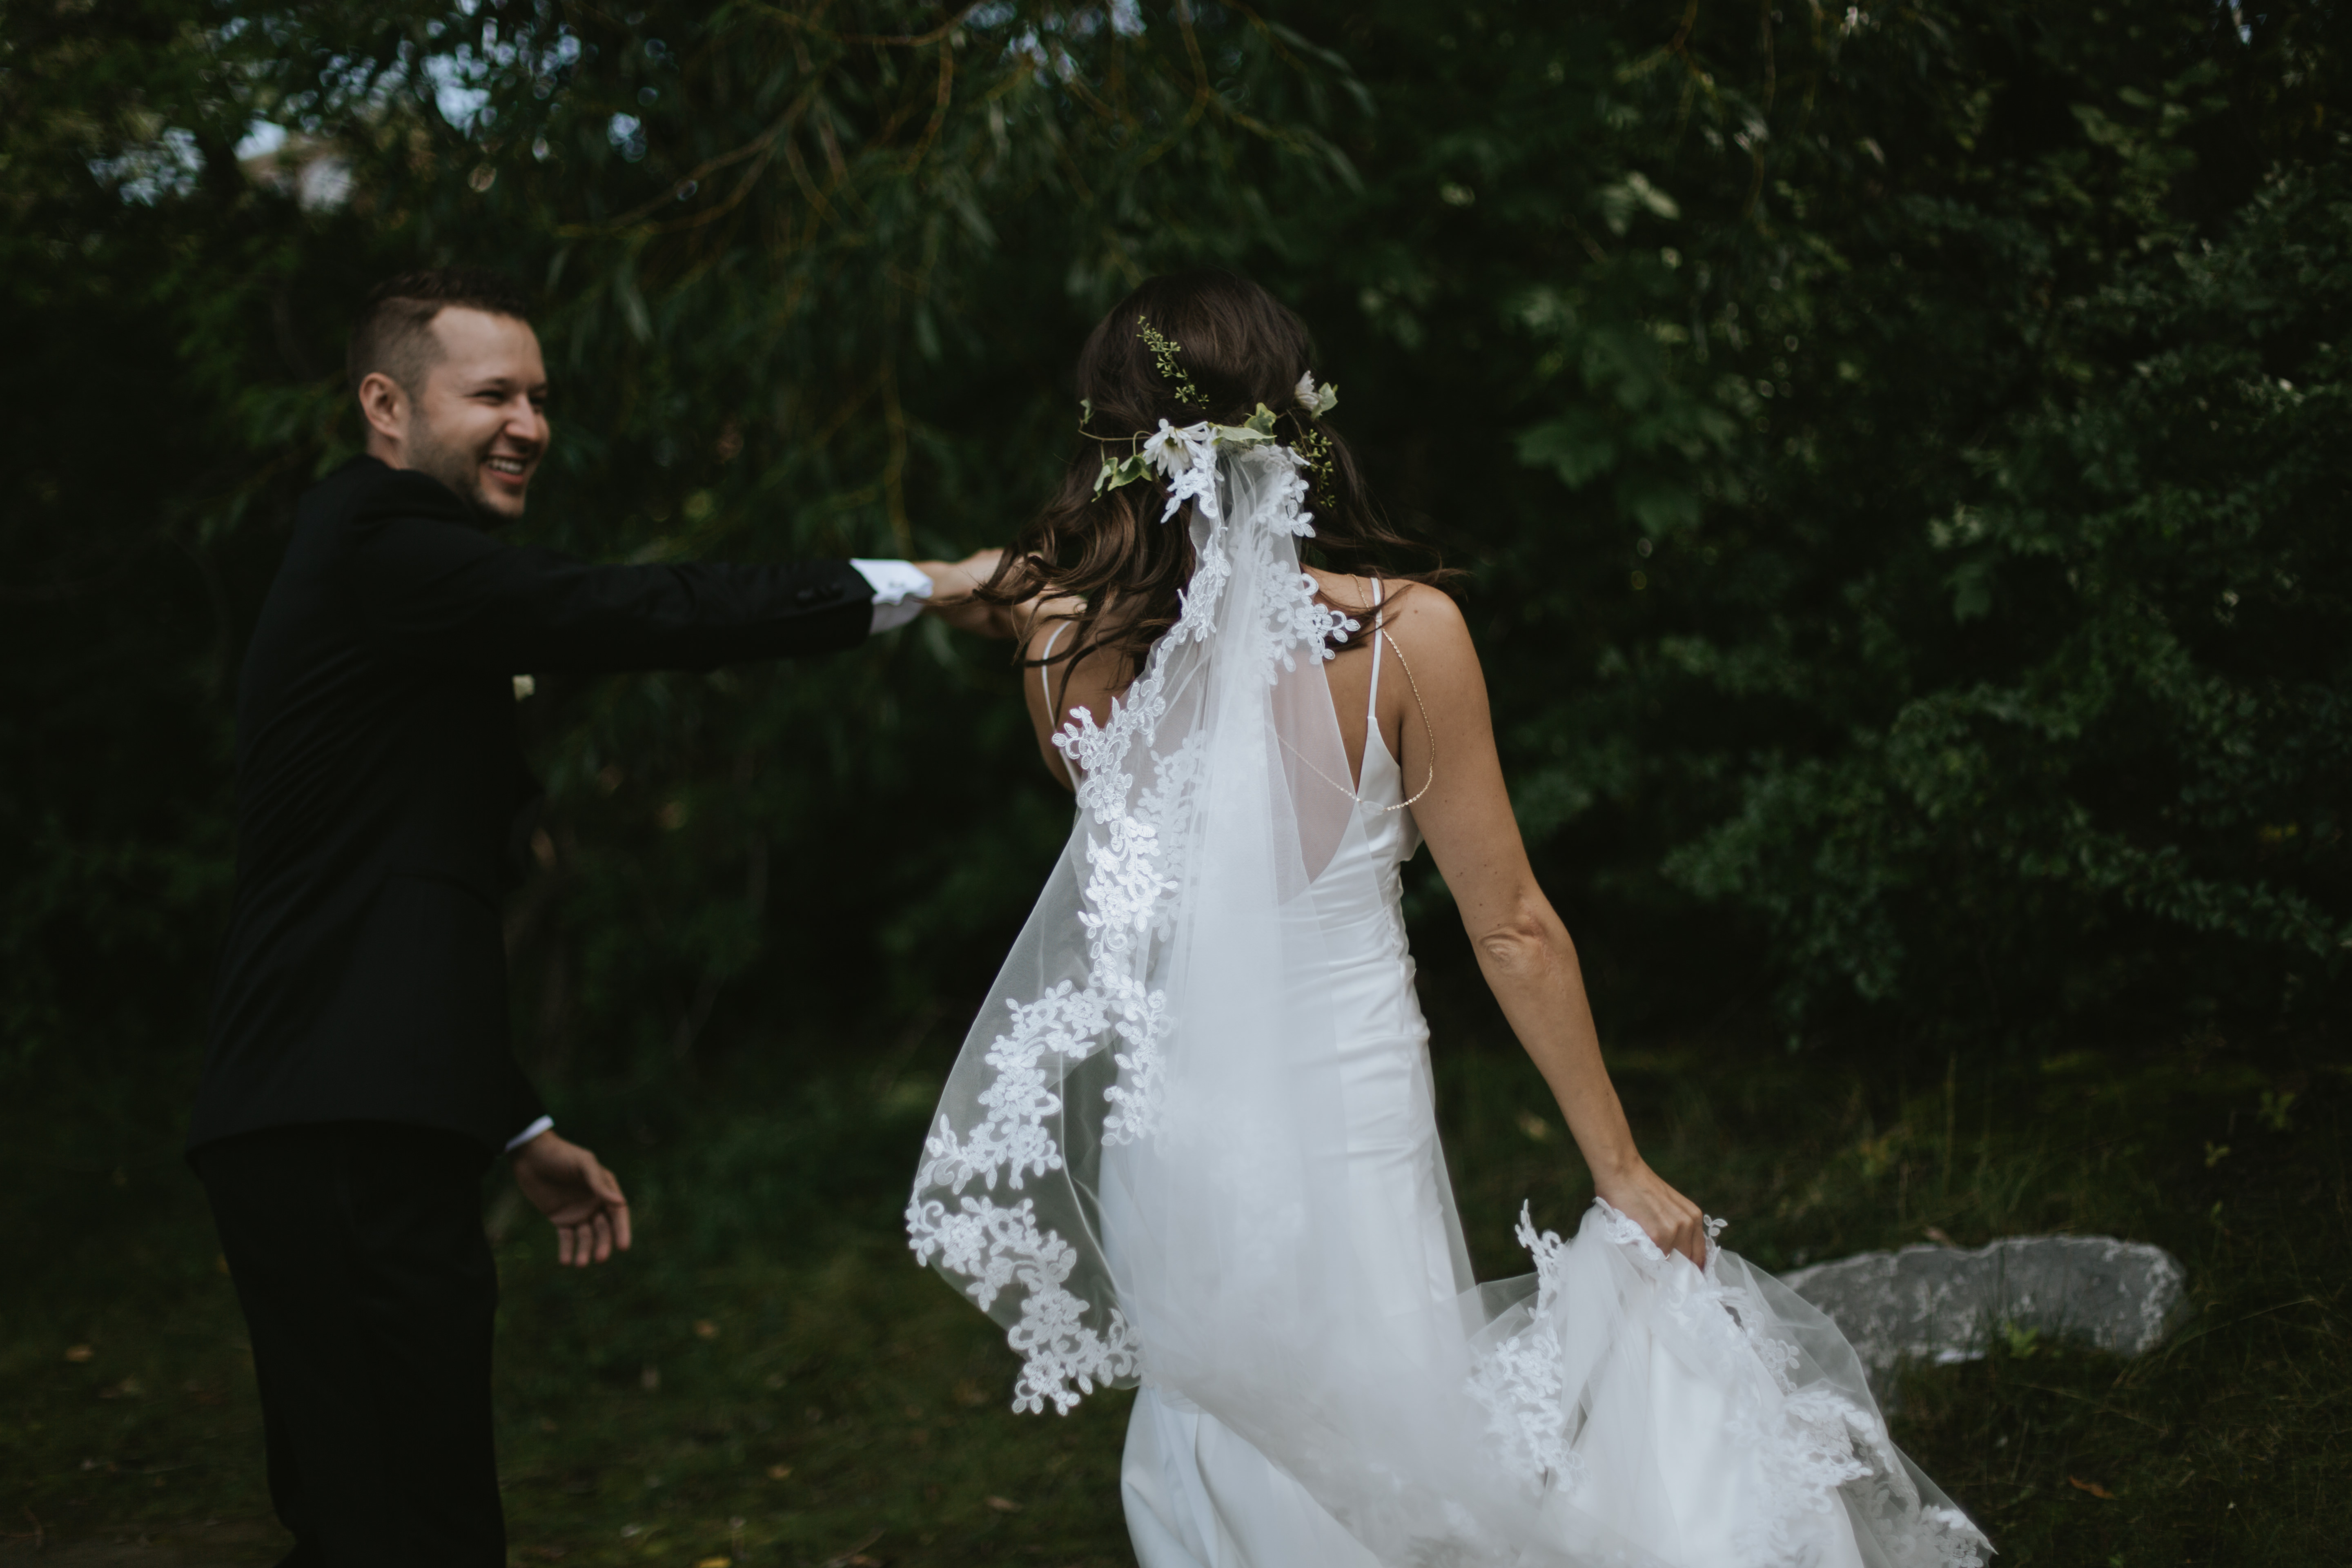 groom swings bride around while she holds her dress up